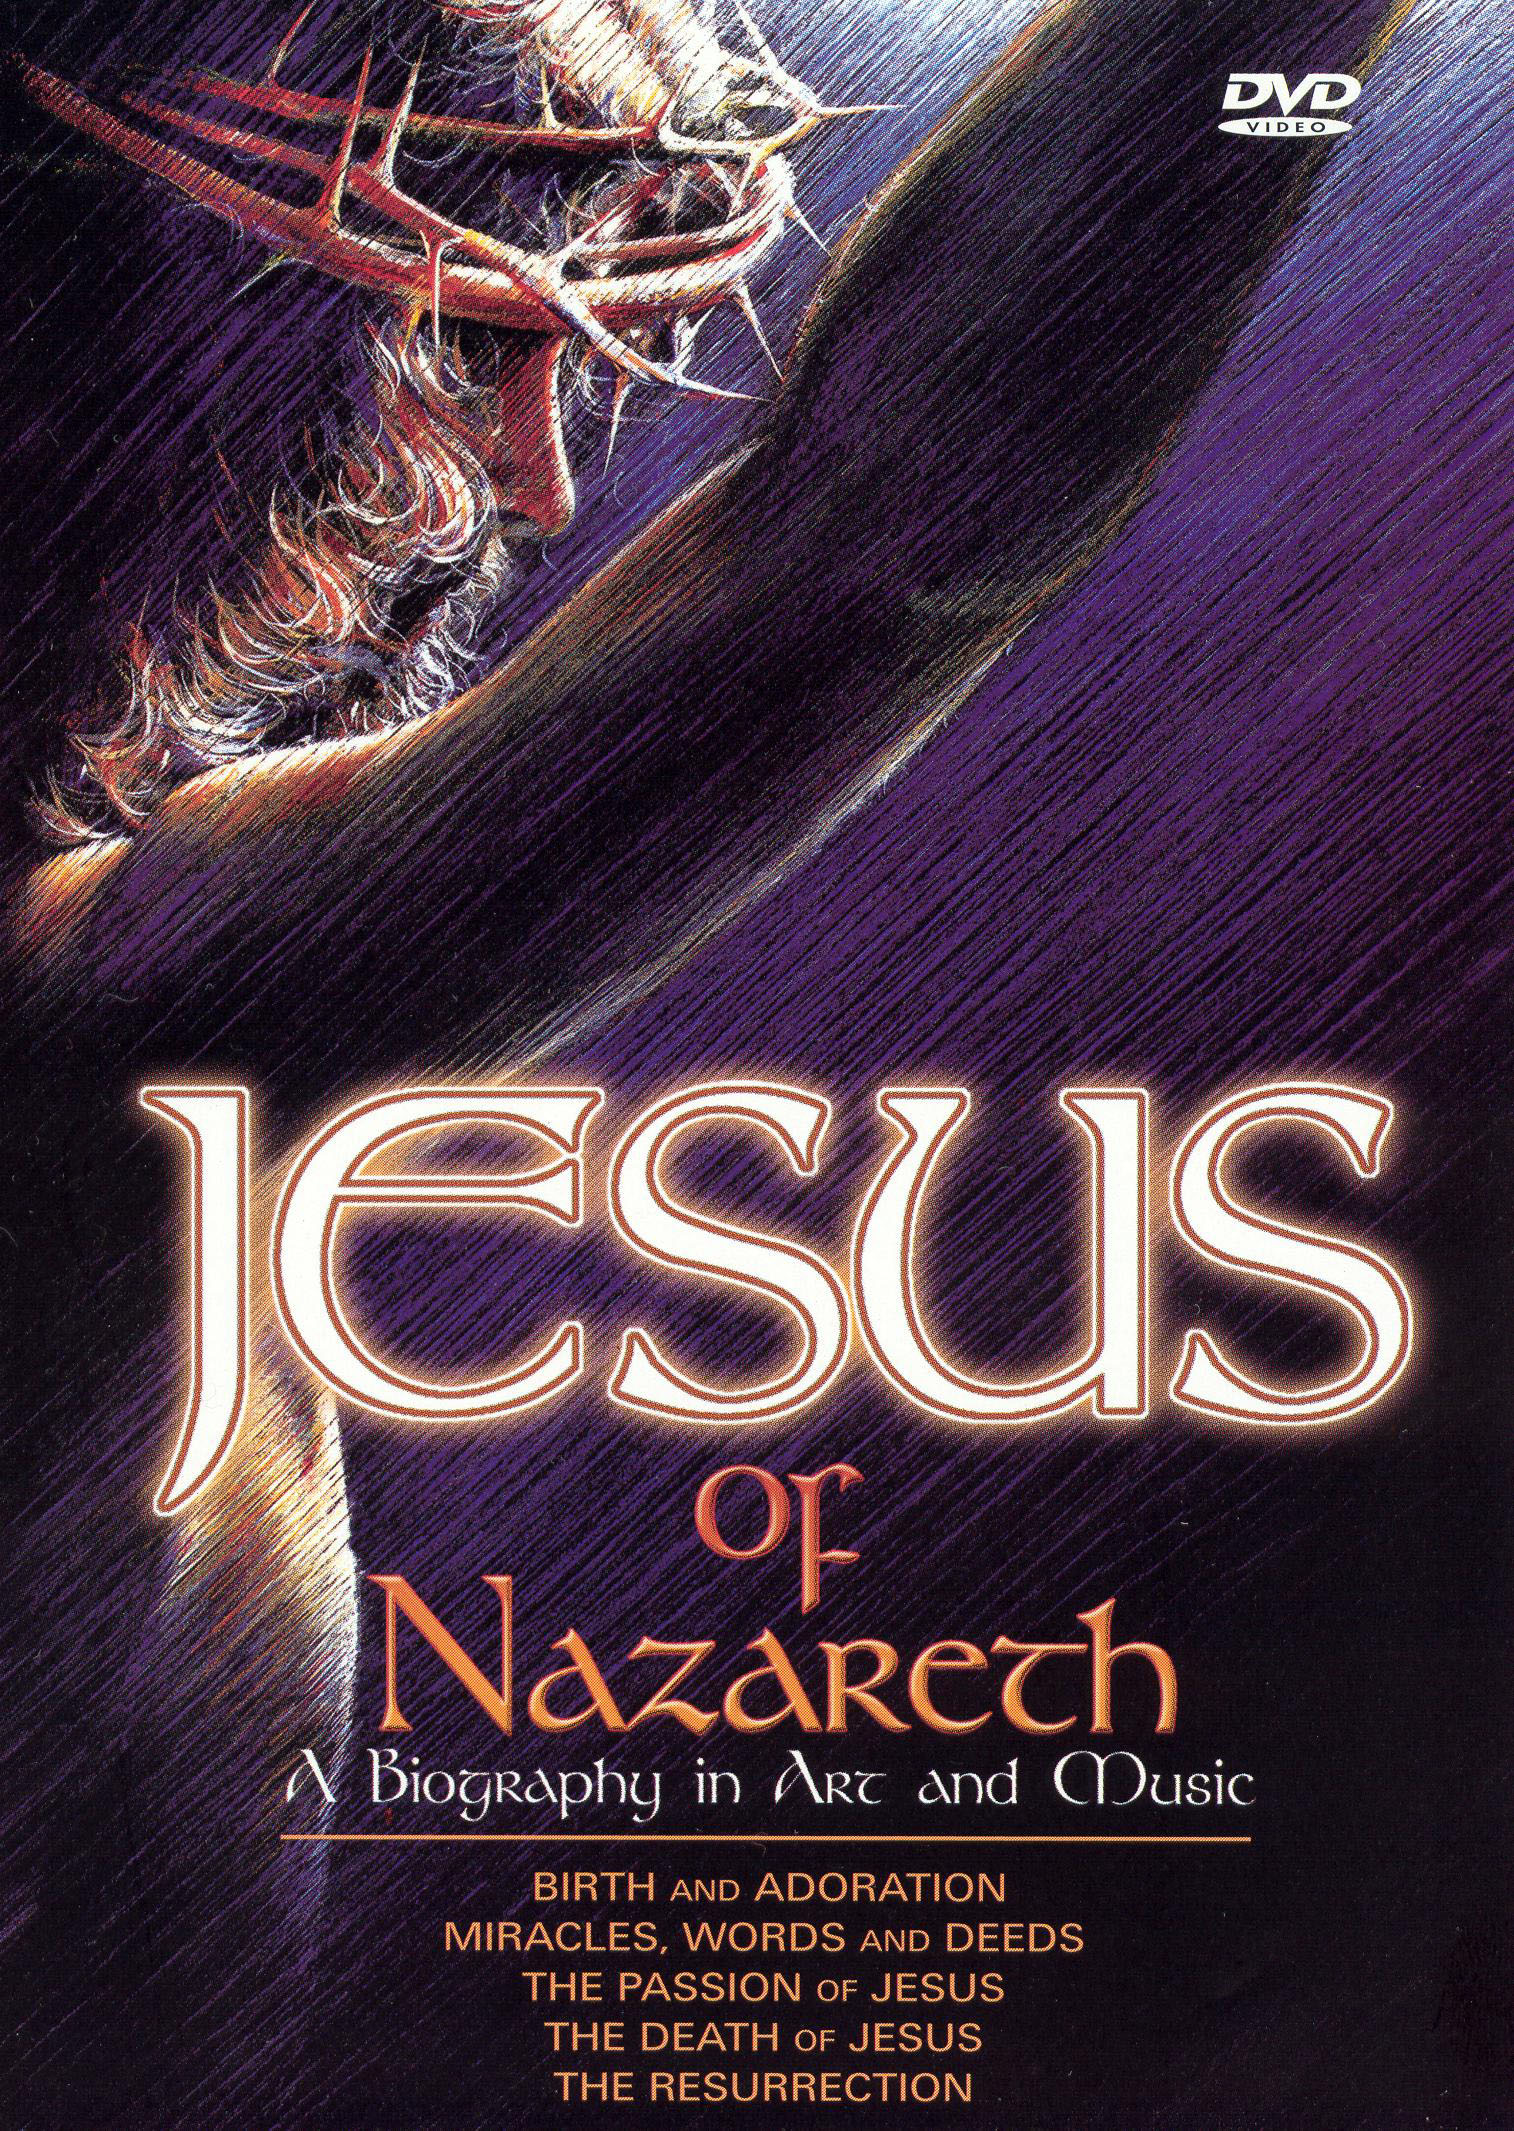 Jesus of Nazareth: A Biography in Art and Music